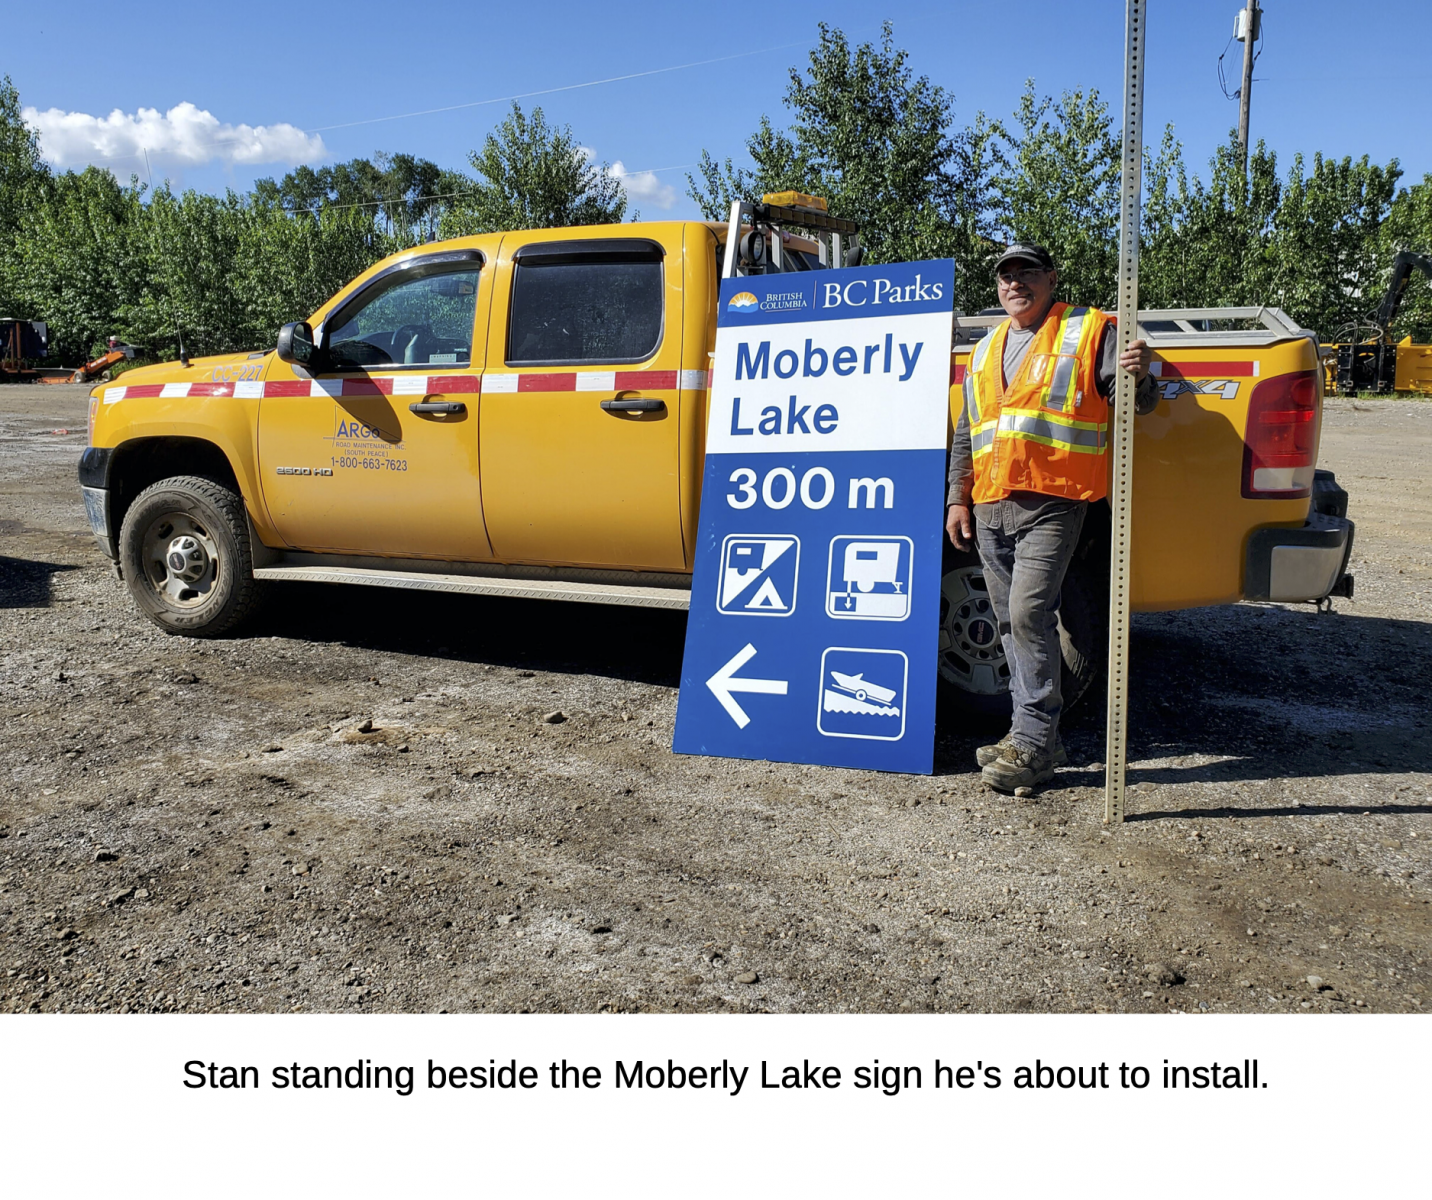 Stan standing beside the Moberly Lake sign he's about to install.